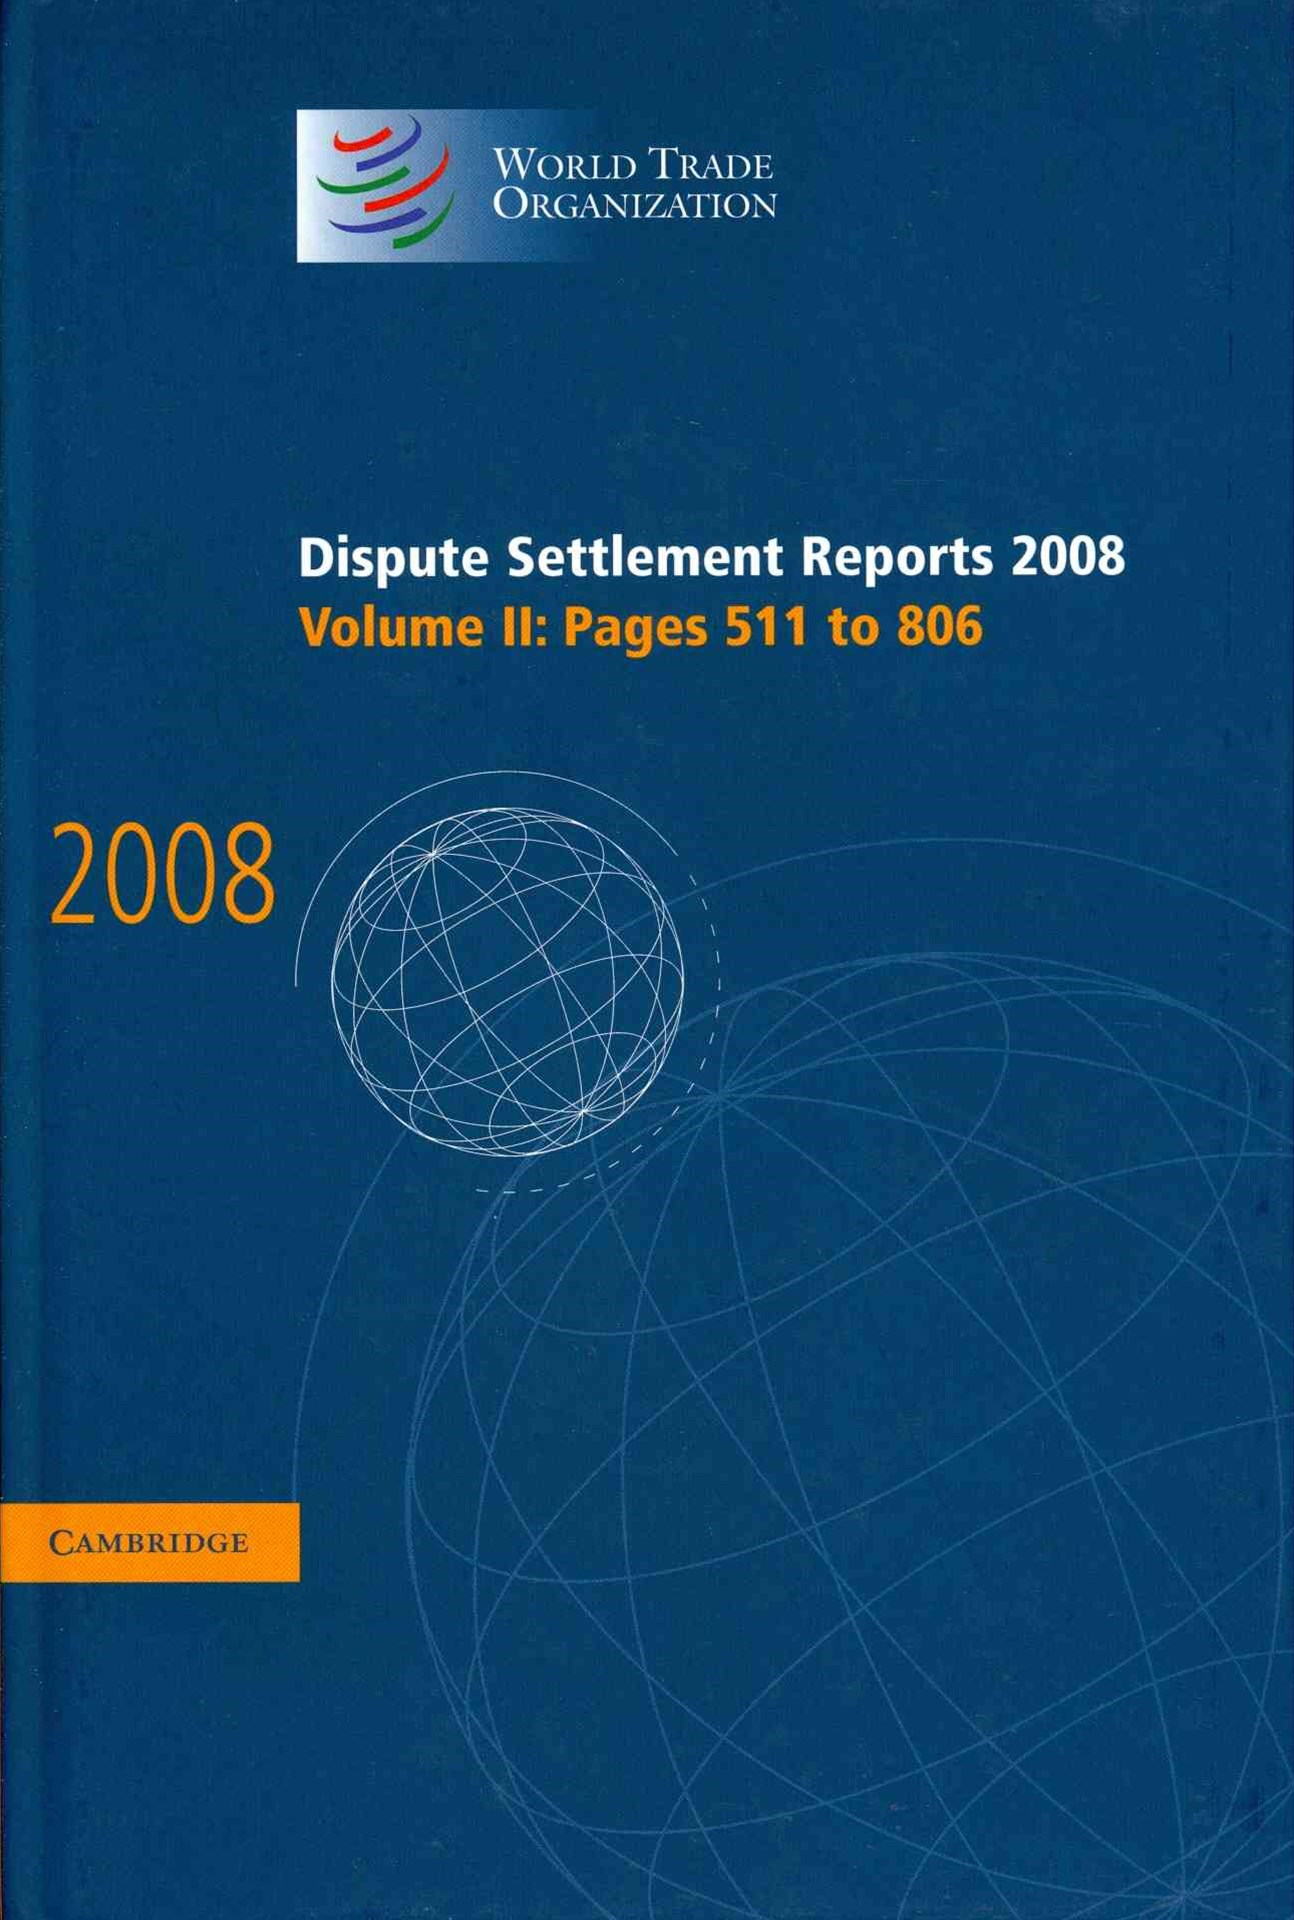 Dispute Settlement Reports 2008: Volume 2, Pages 511-806